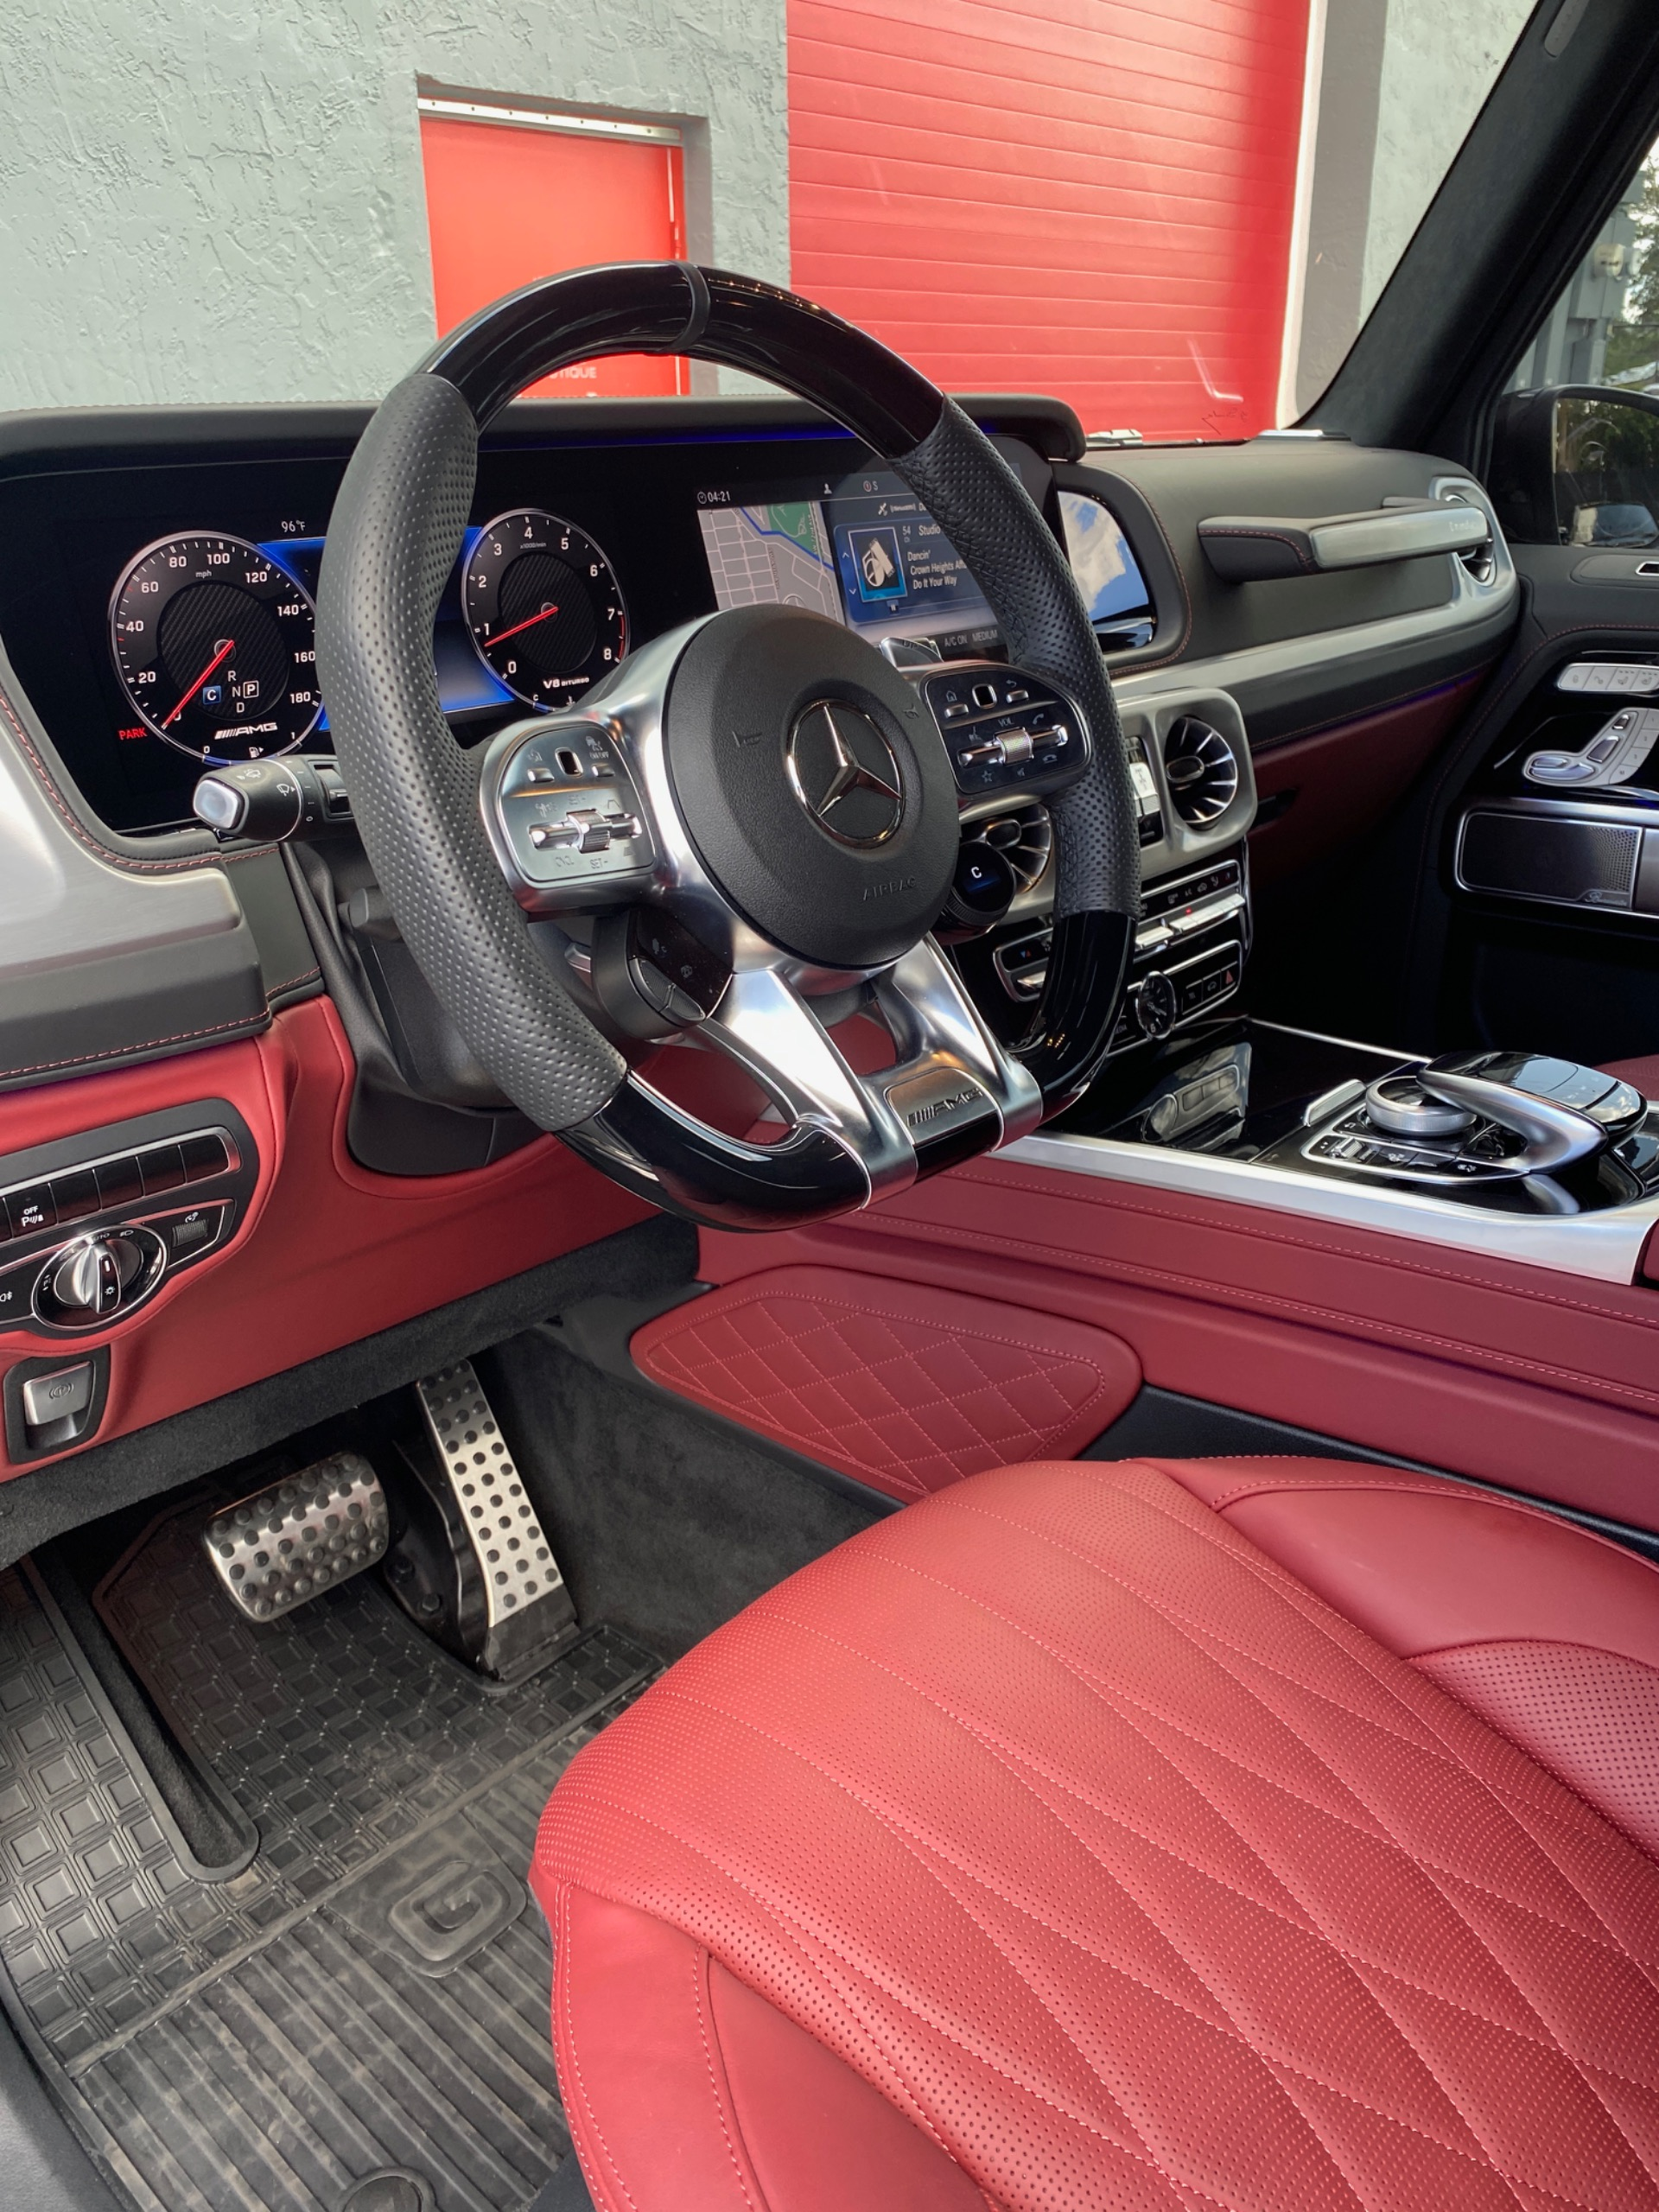 Used 2020 Mercedes Benz G63 Amg Suv G Manufaktur Interior Package Plus Sintered Bronze Magno For Sale Special Pricing Chicago Motor Cars Stock 17309